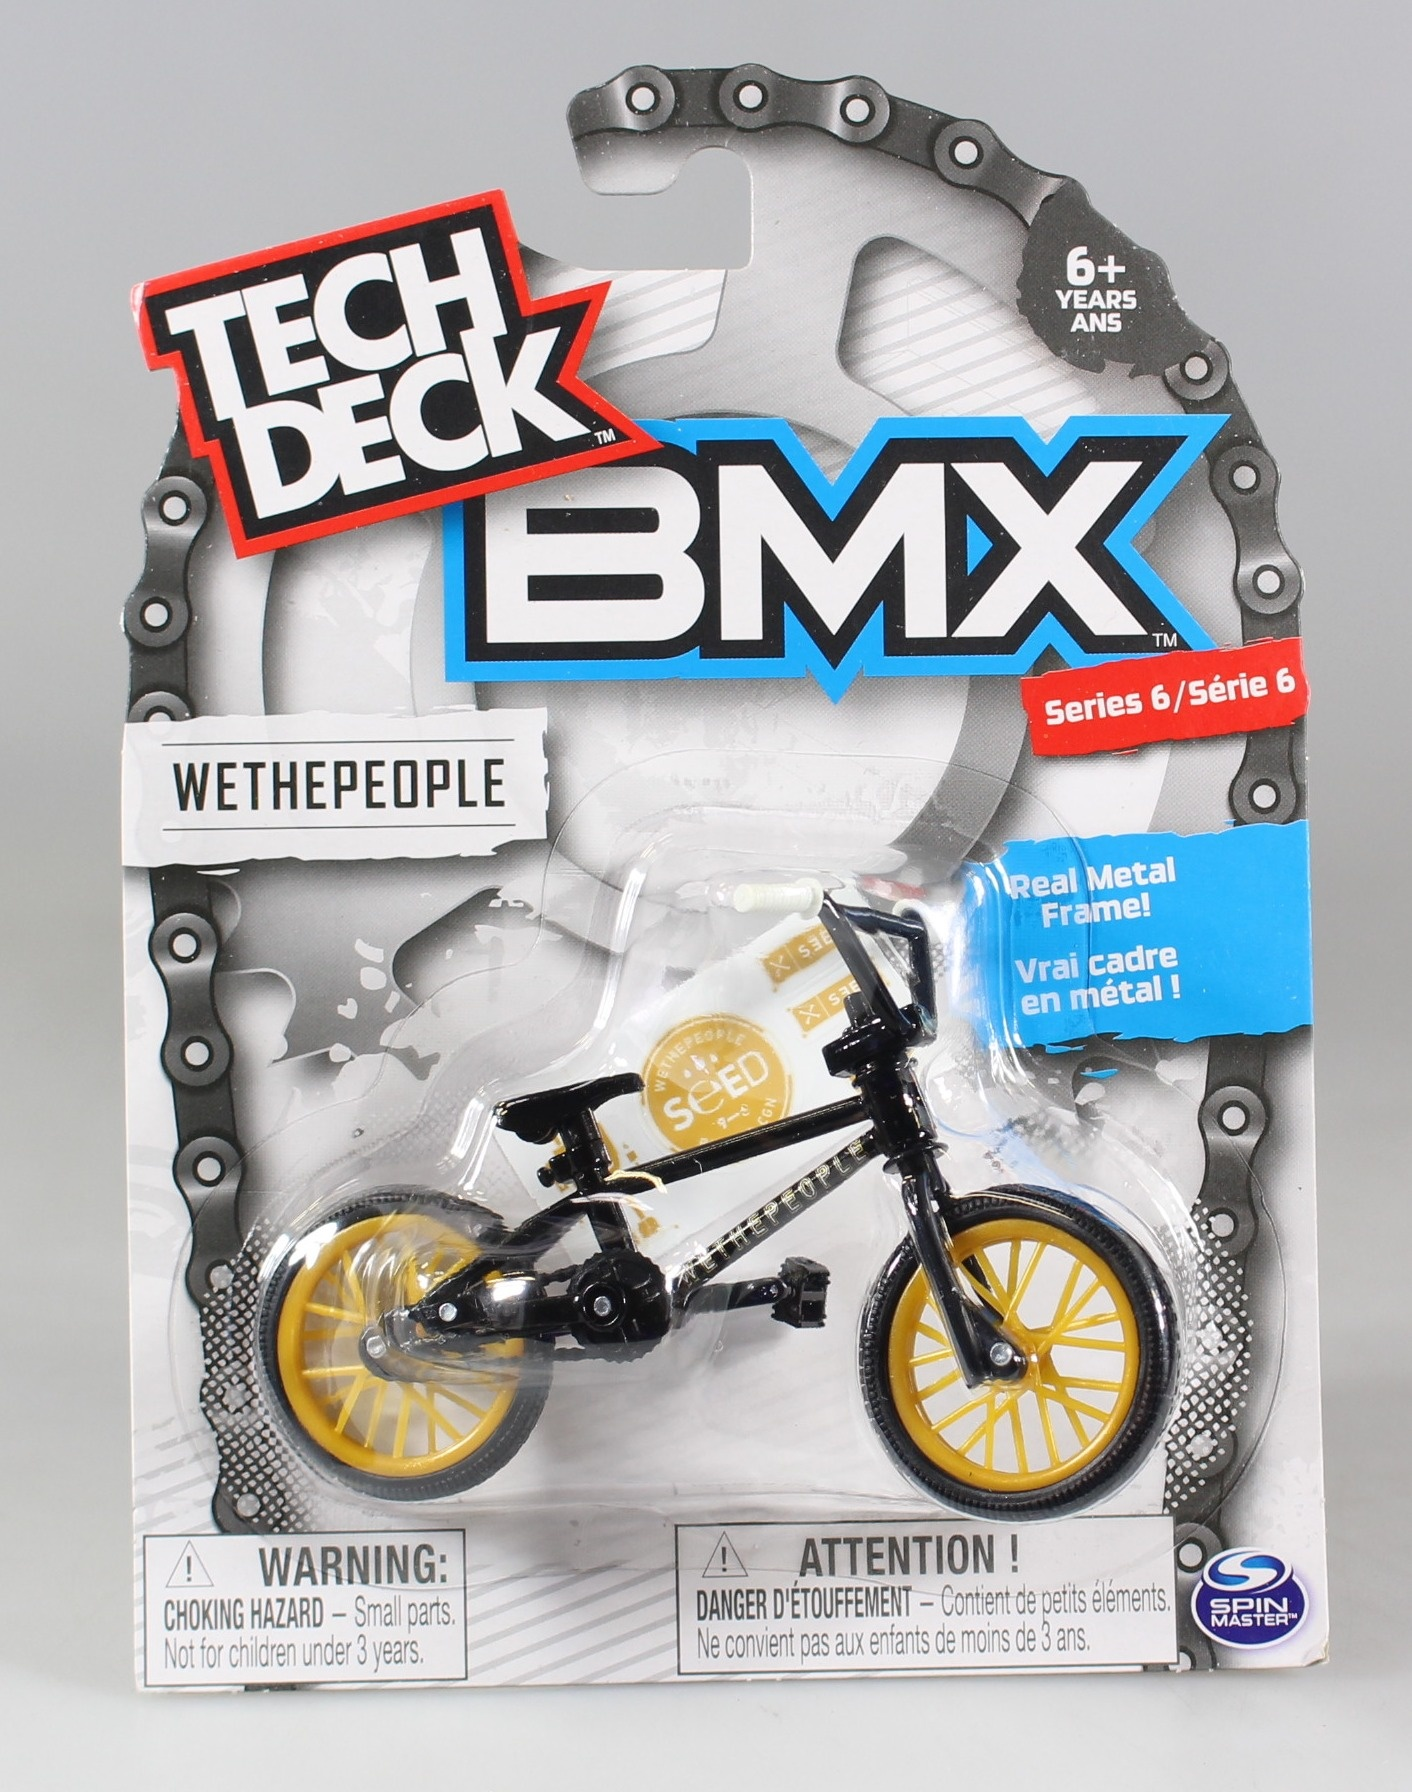 Tech Deck Bmx Finger Bike Wethepeople Black Gold Series 6 By Tech Deck Shop Online For Toys In Australia